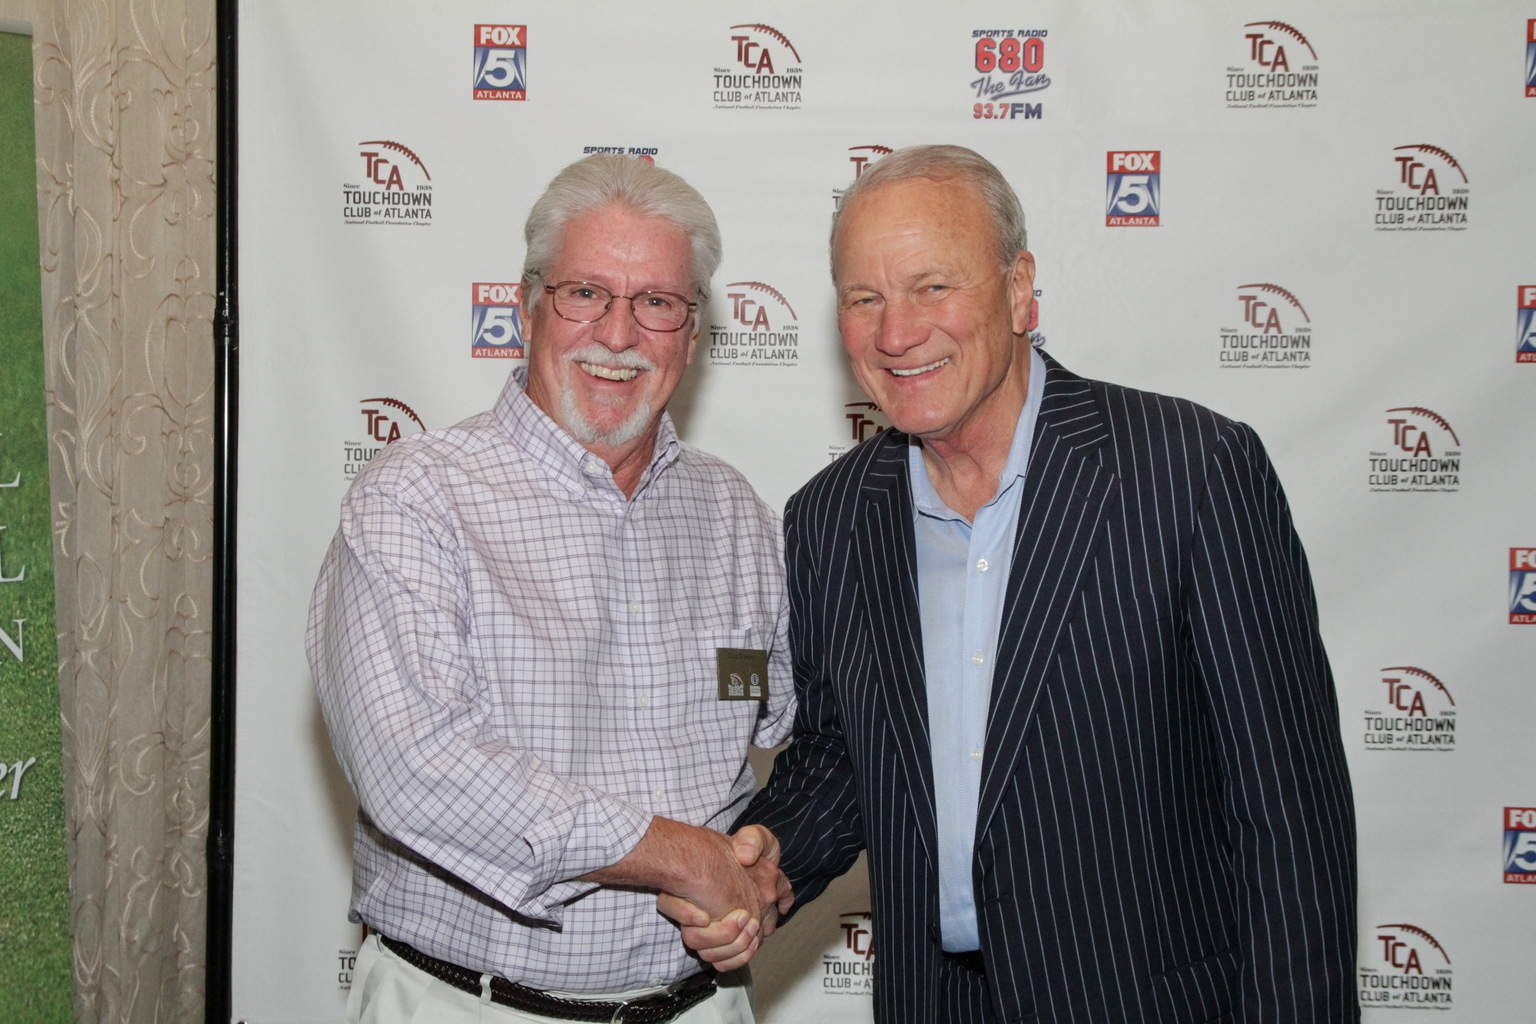 TCA's Chip Emerson & Bary Switzer